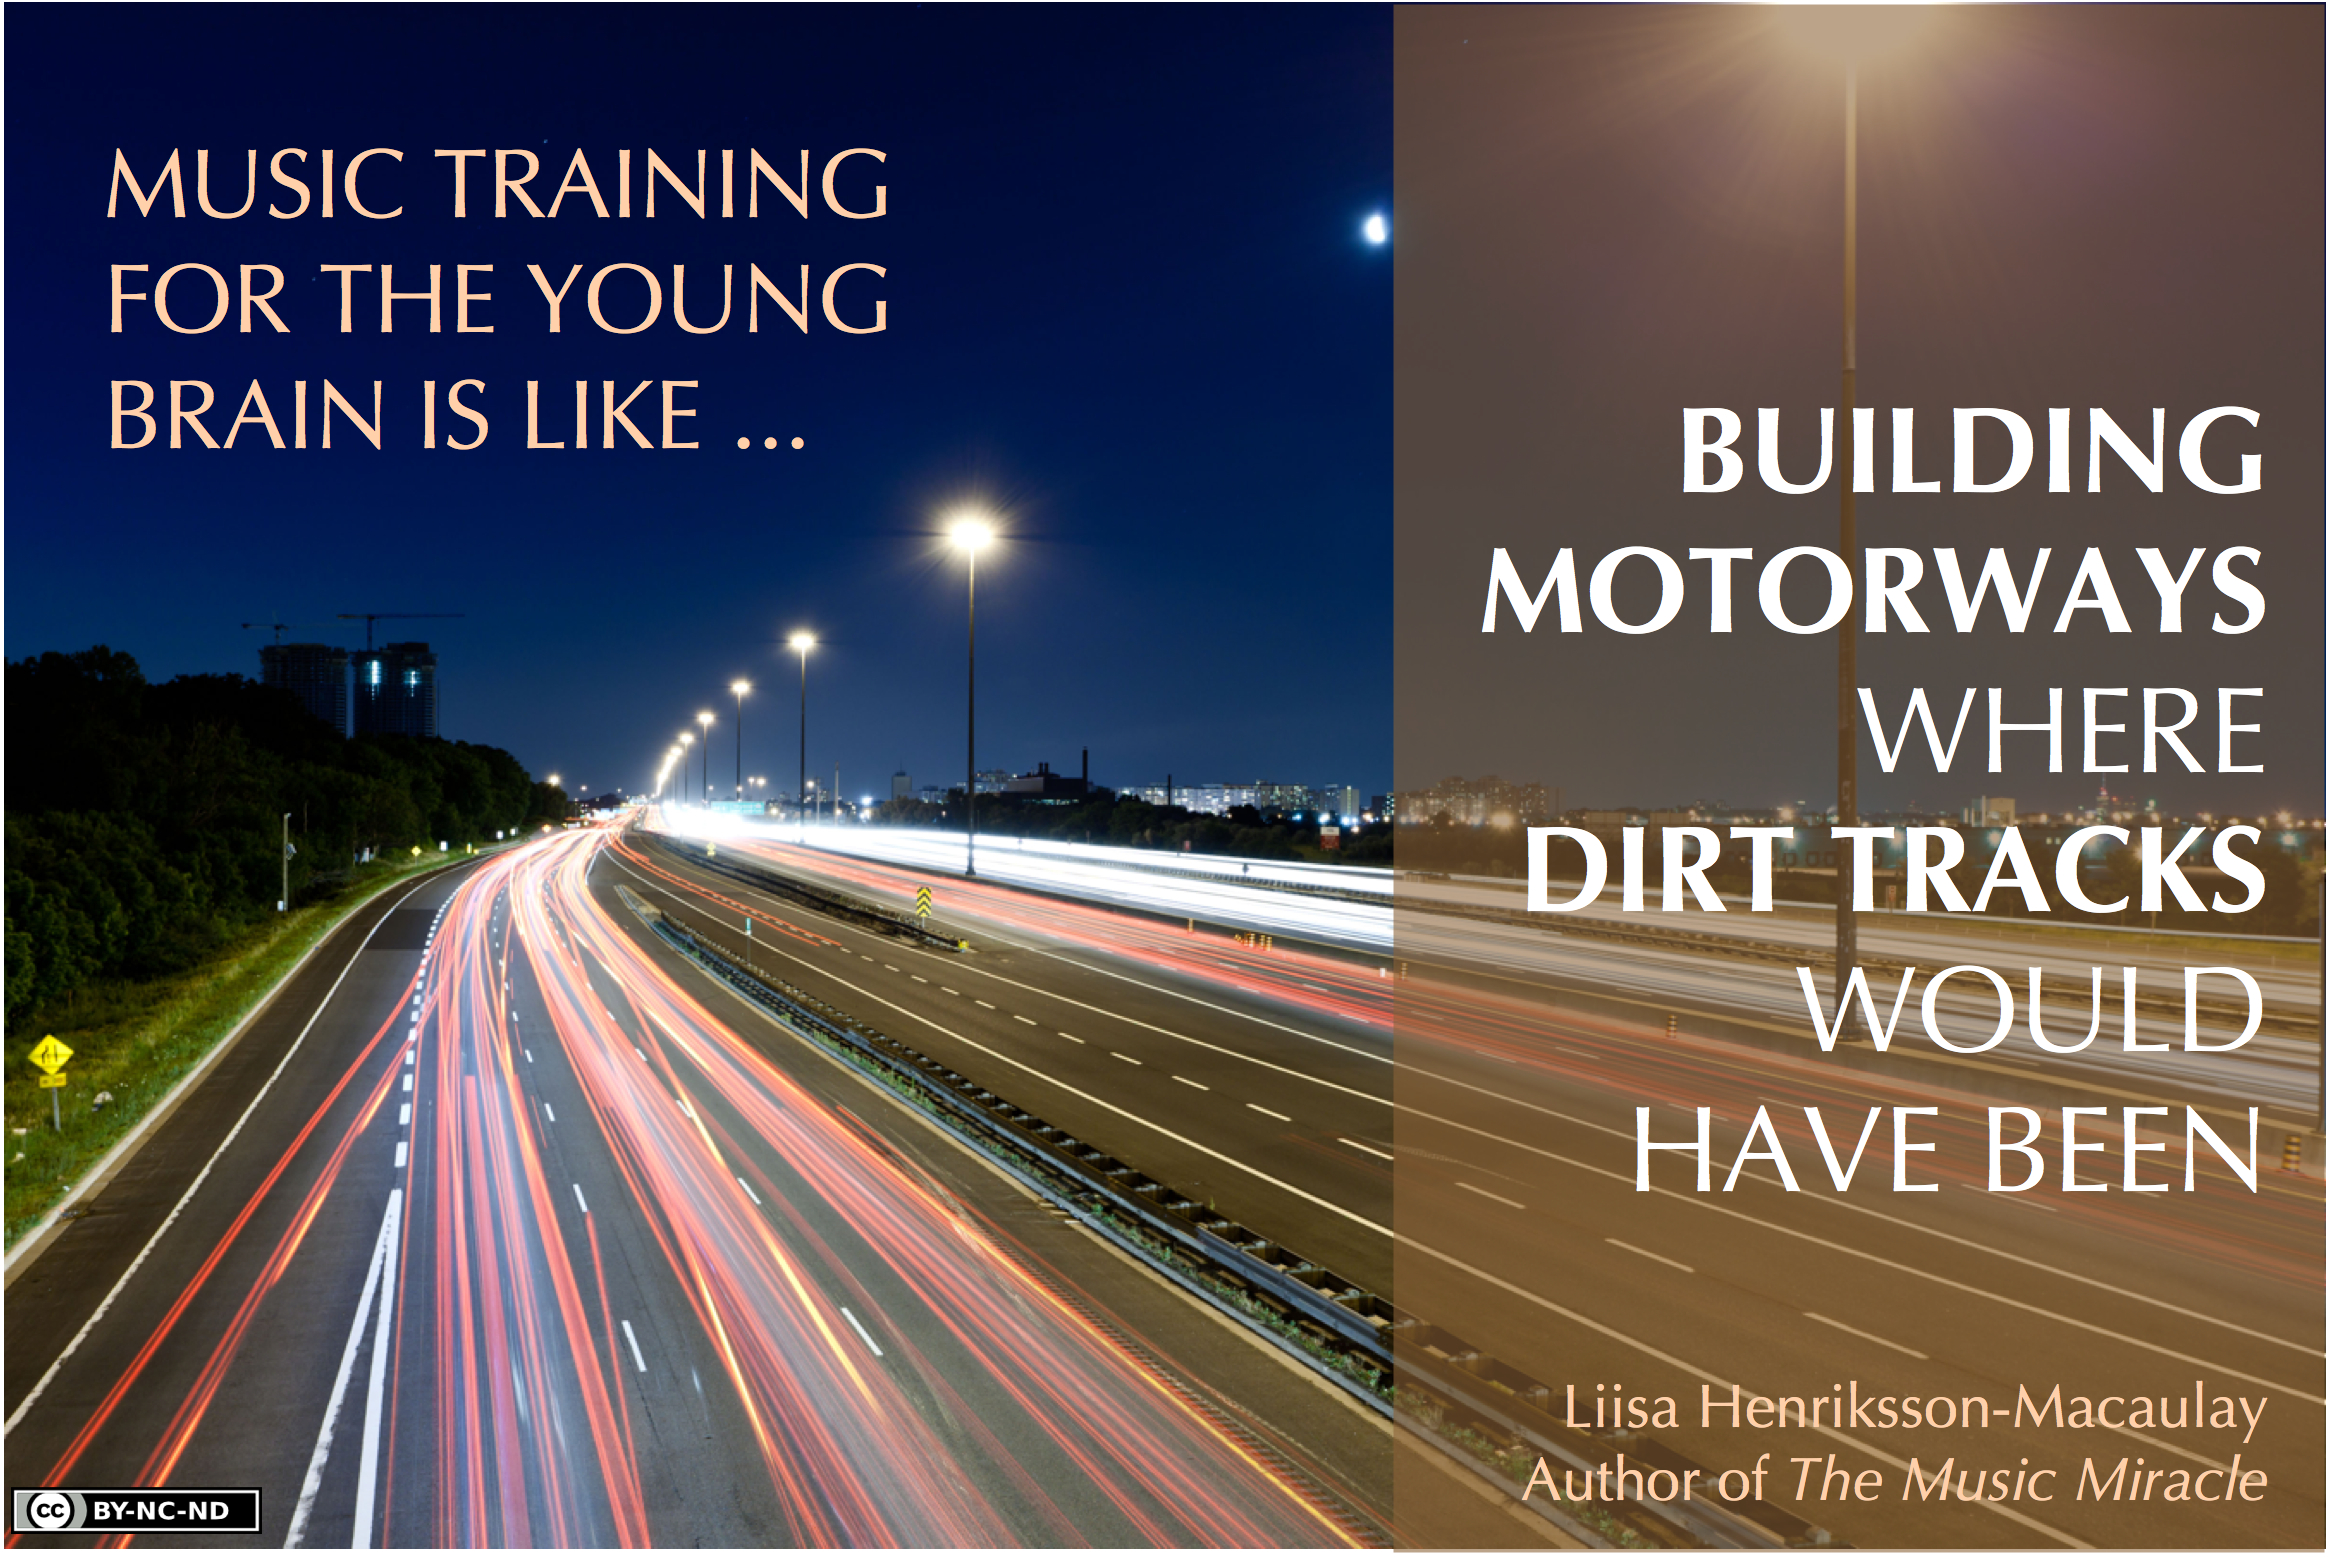 Liisa quote about highways (June 2014).jpeg